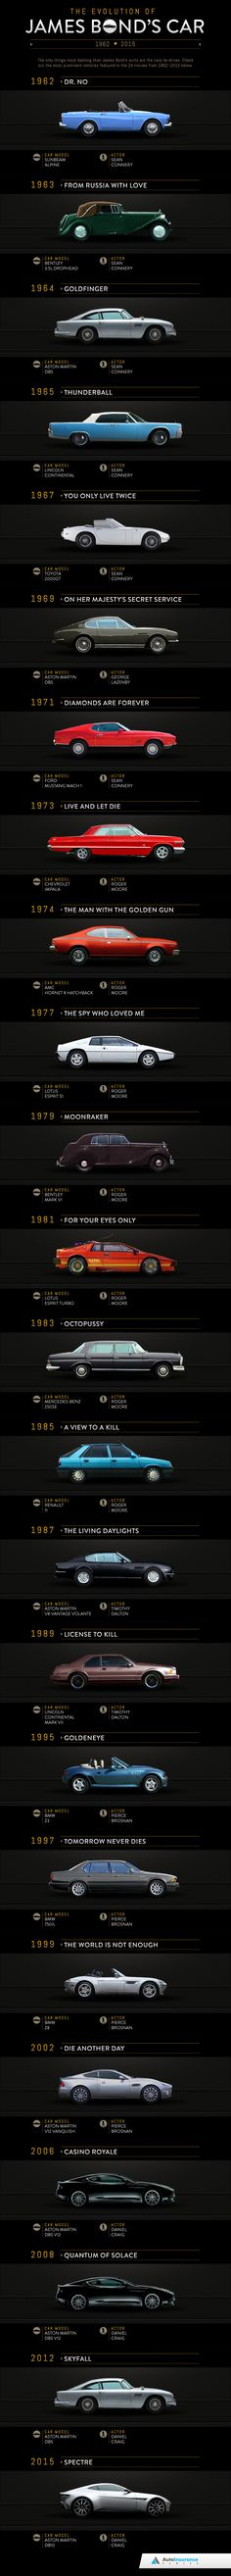 davidsbirthday-com-bonds-cars-a81add6a968f189fccfe326cce740c56-james-bond-cars